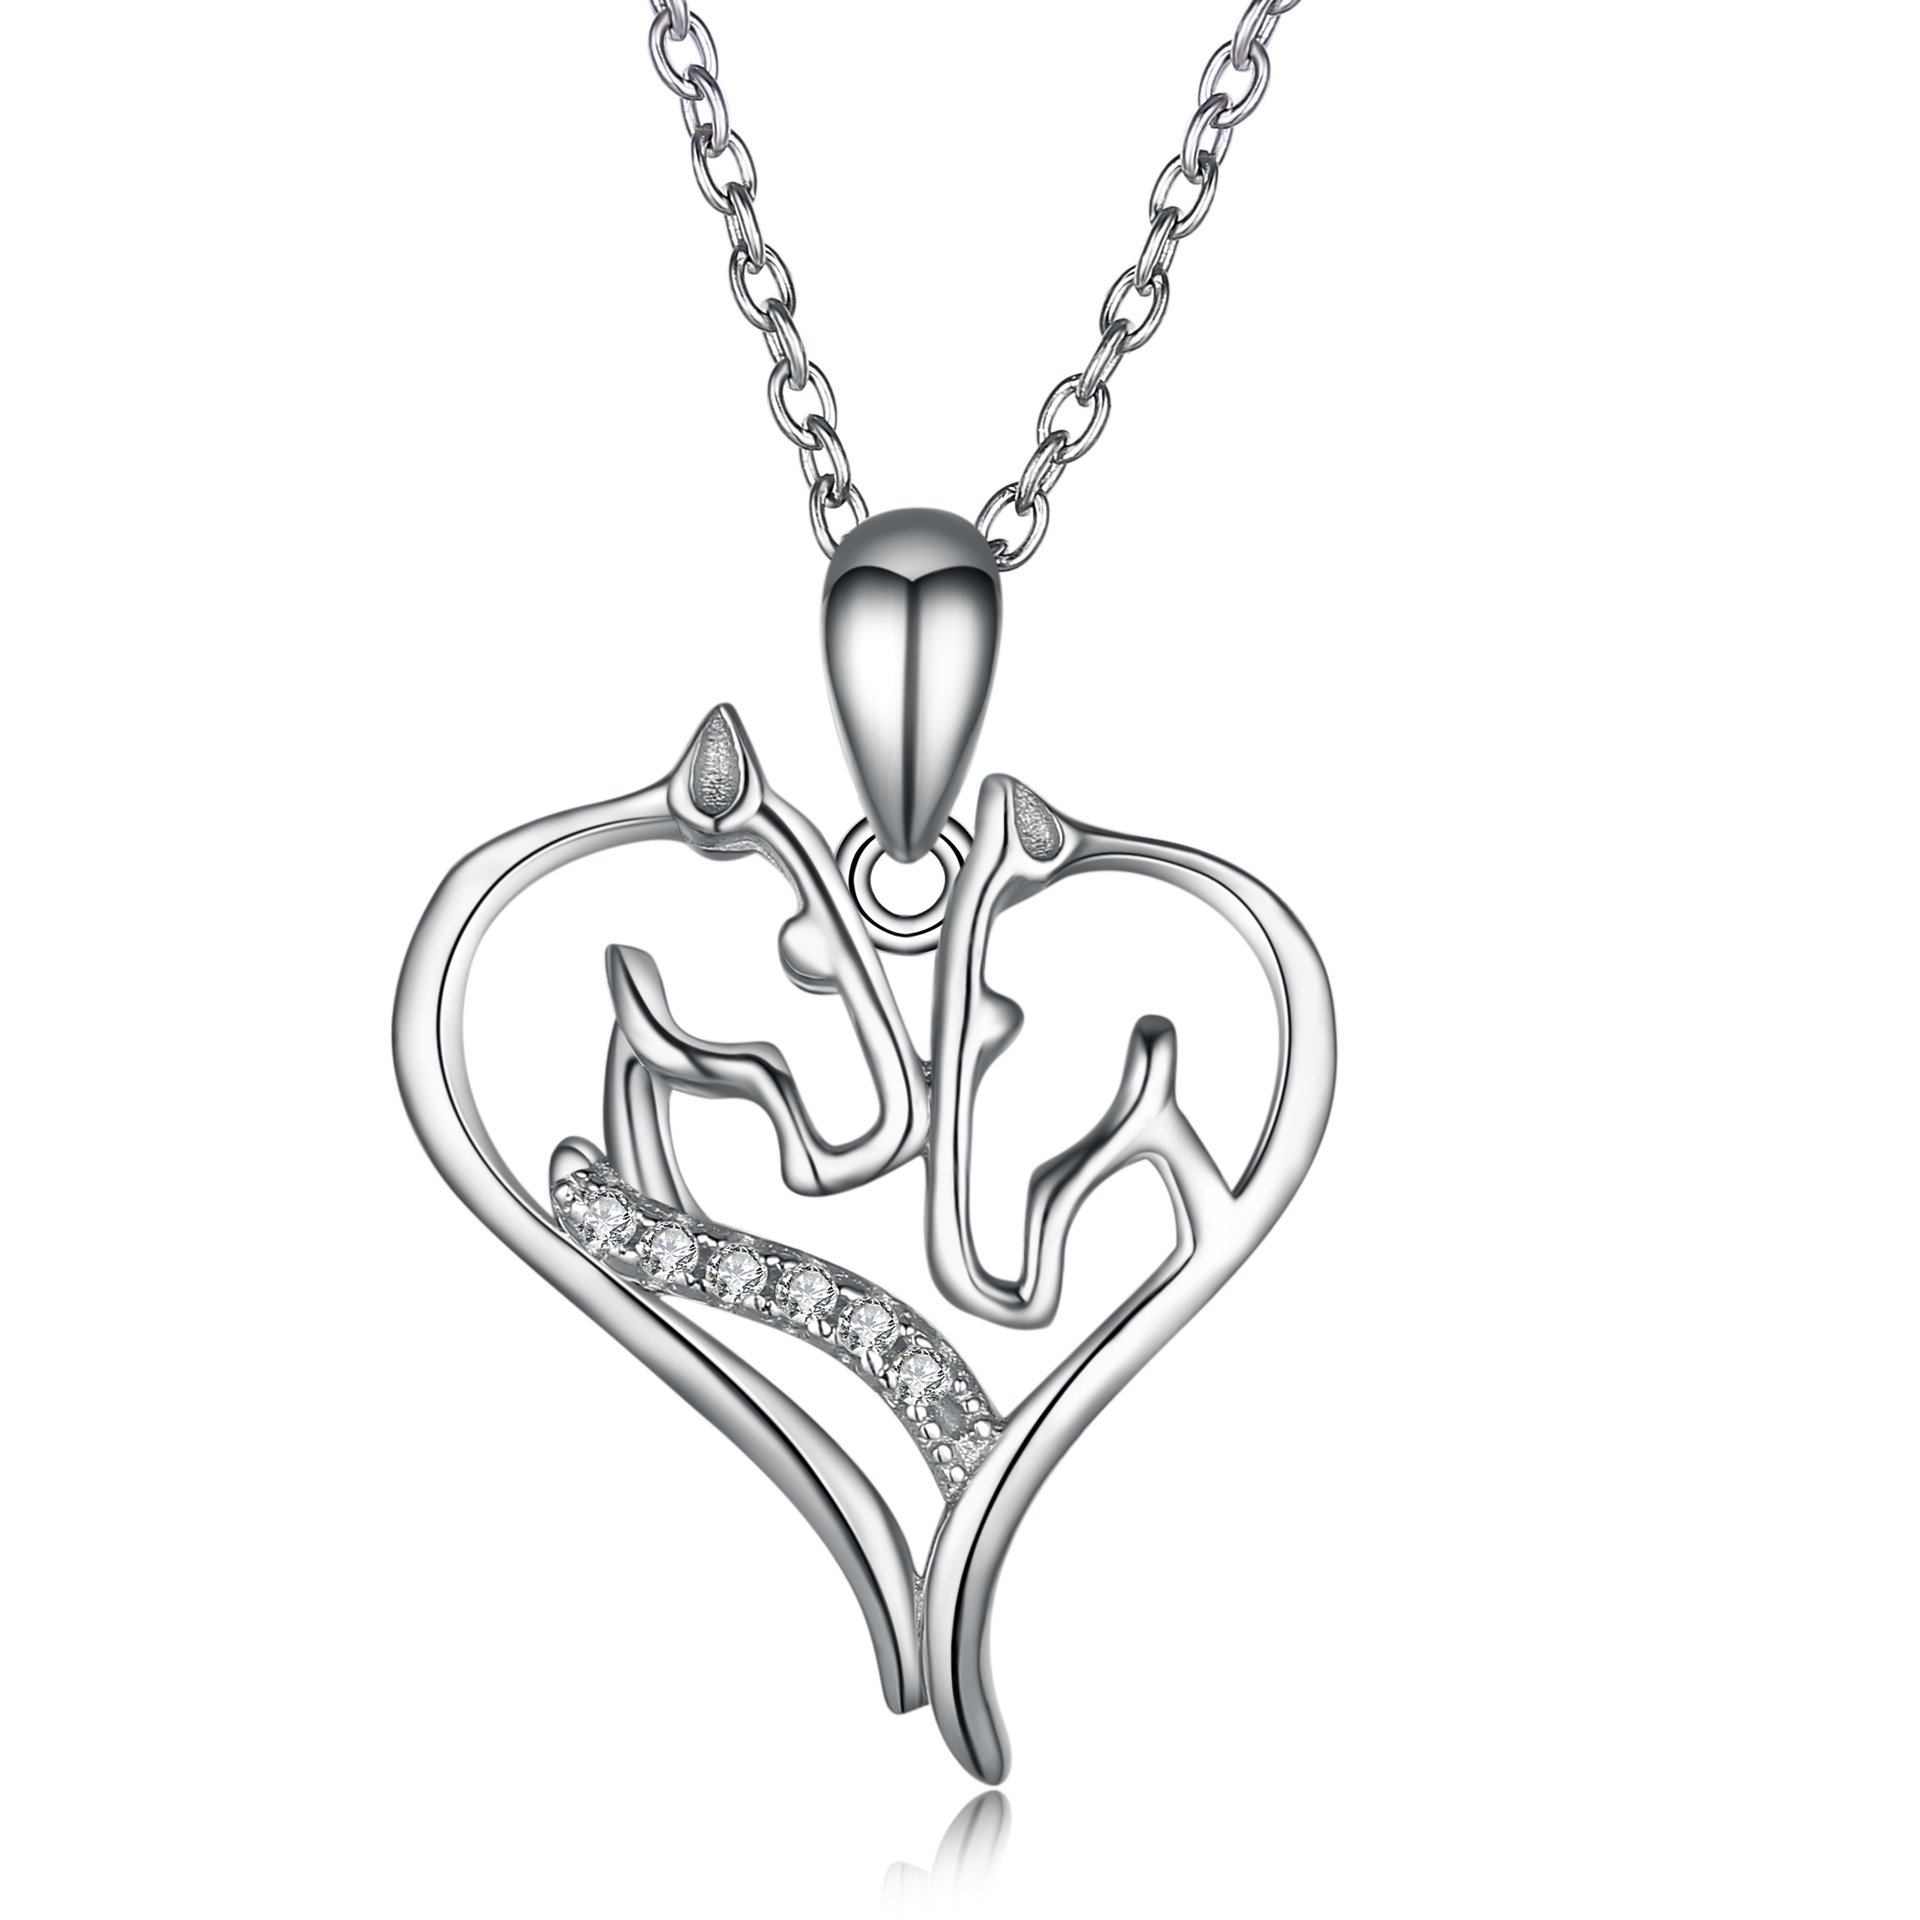 Angel caller Horse Necklace Sterling Silver Cubic Zirconia Horse Head Heart Shape Pendant Necklace for Women Girls, 18''